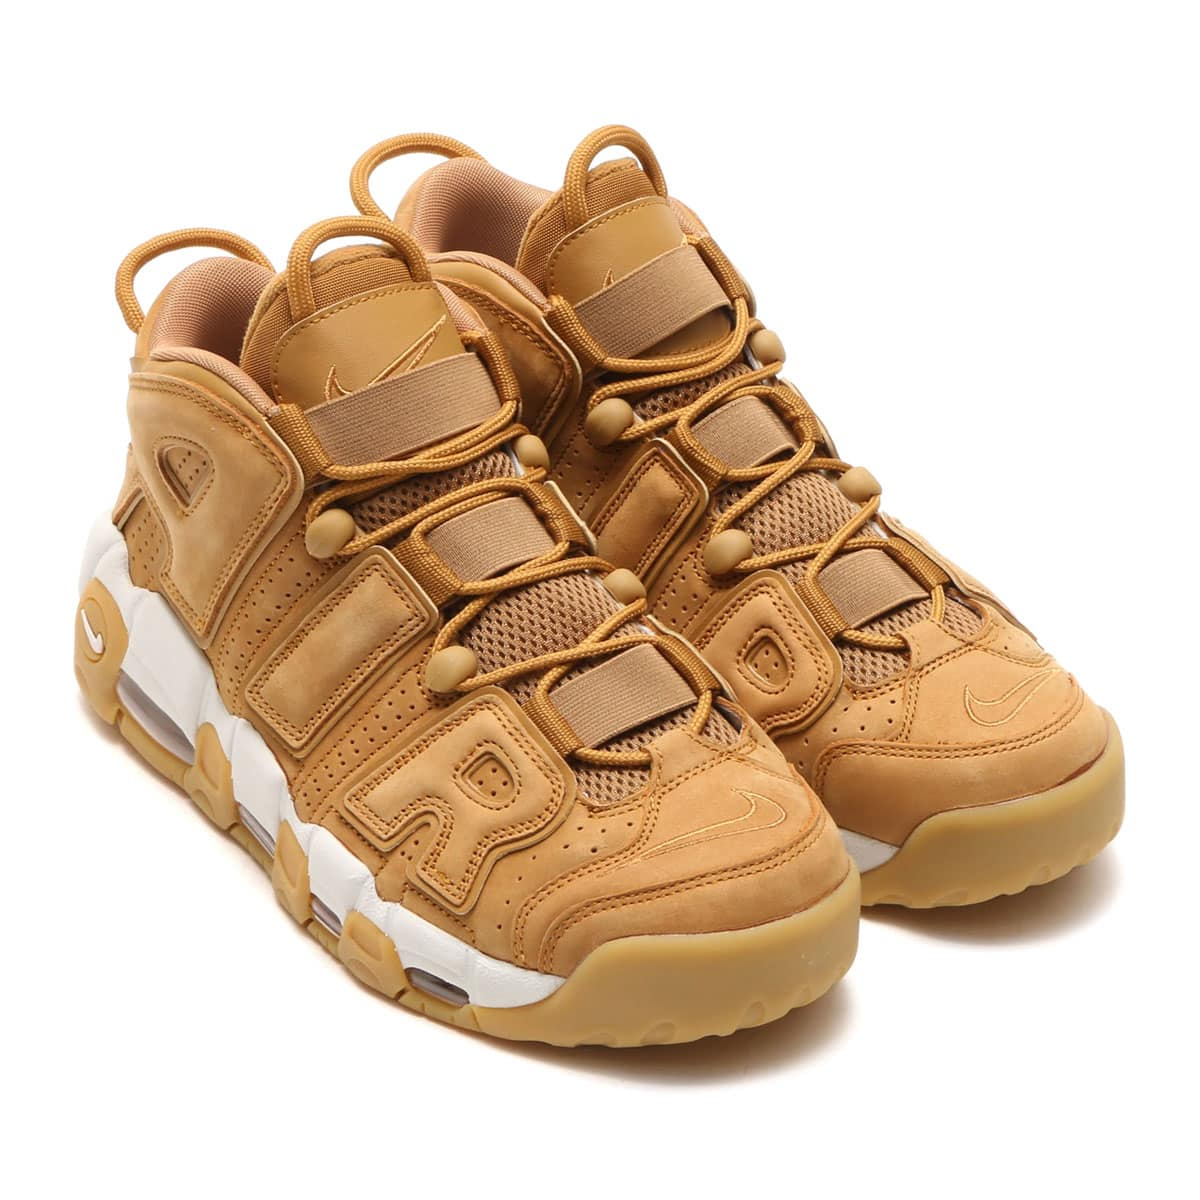 NIKE AIR MORE UPTEMPO '96 PRM FLAX/FLAX-PHANTOM-GUM LIGHT BROWN_photo_large